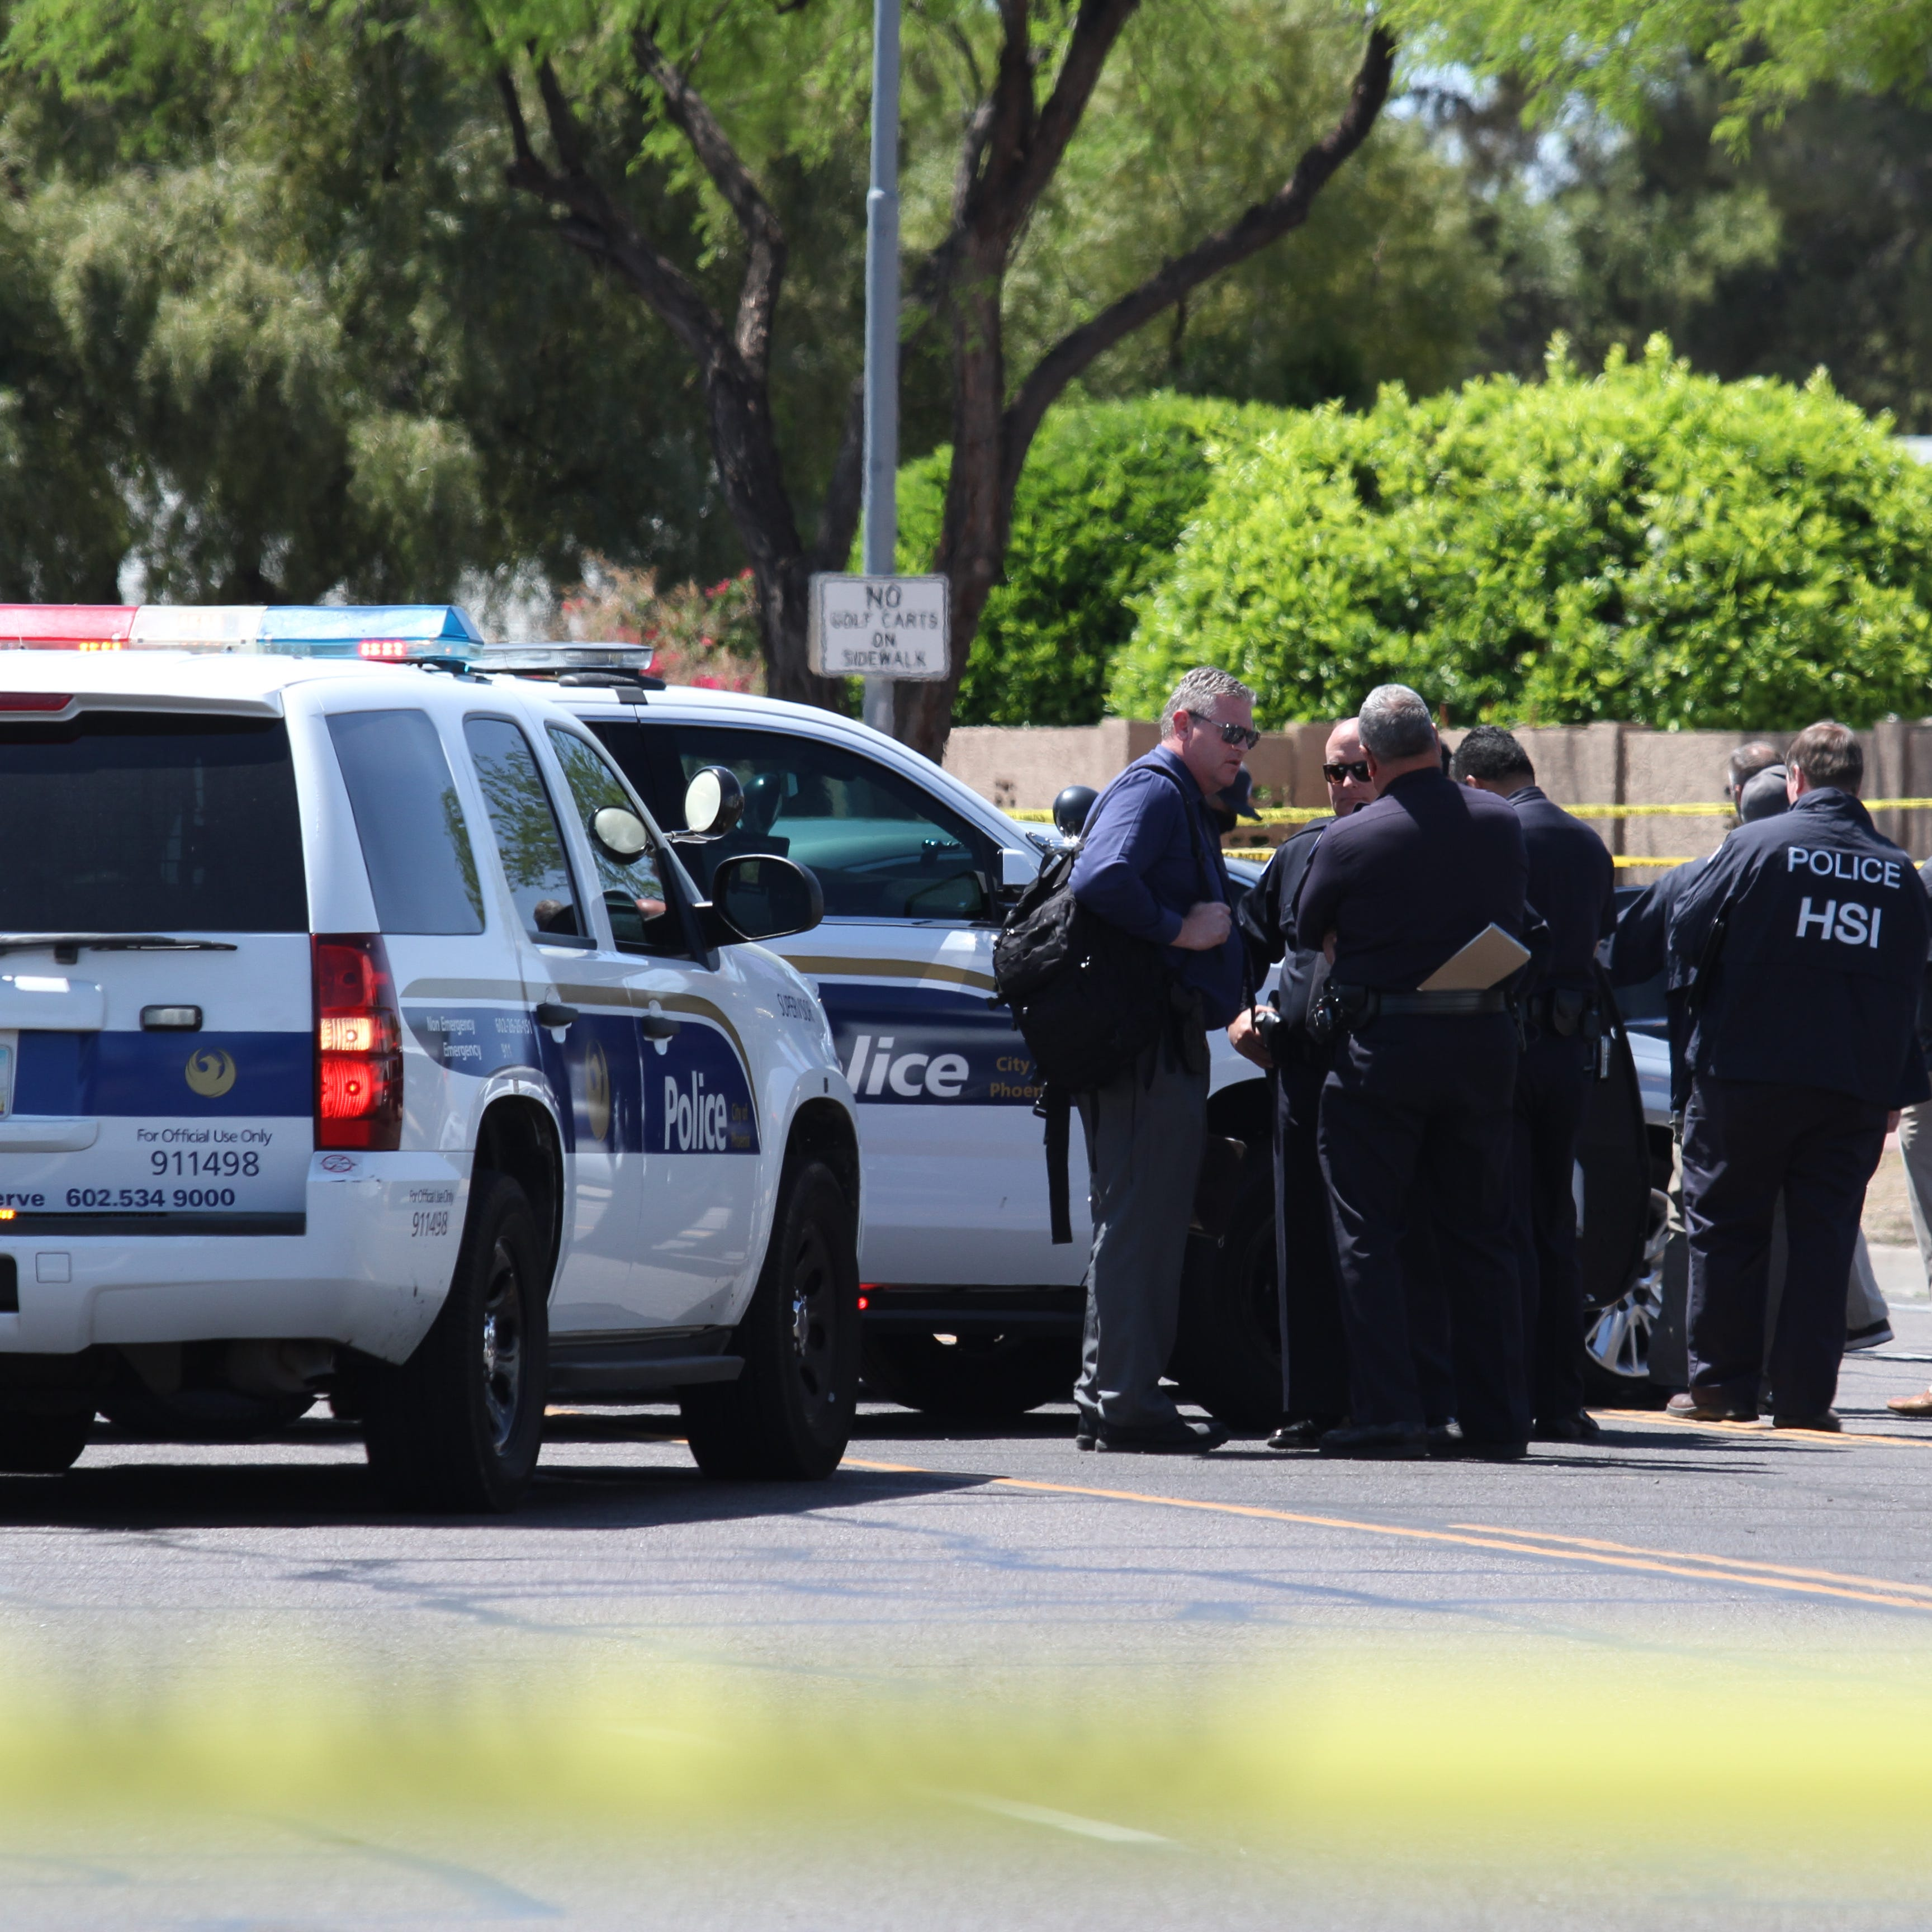 Federal agents fatally fatally shoot woman, wound another while serving warrant in Ahwatukee